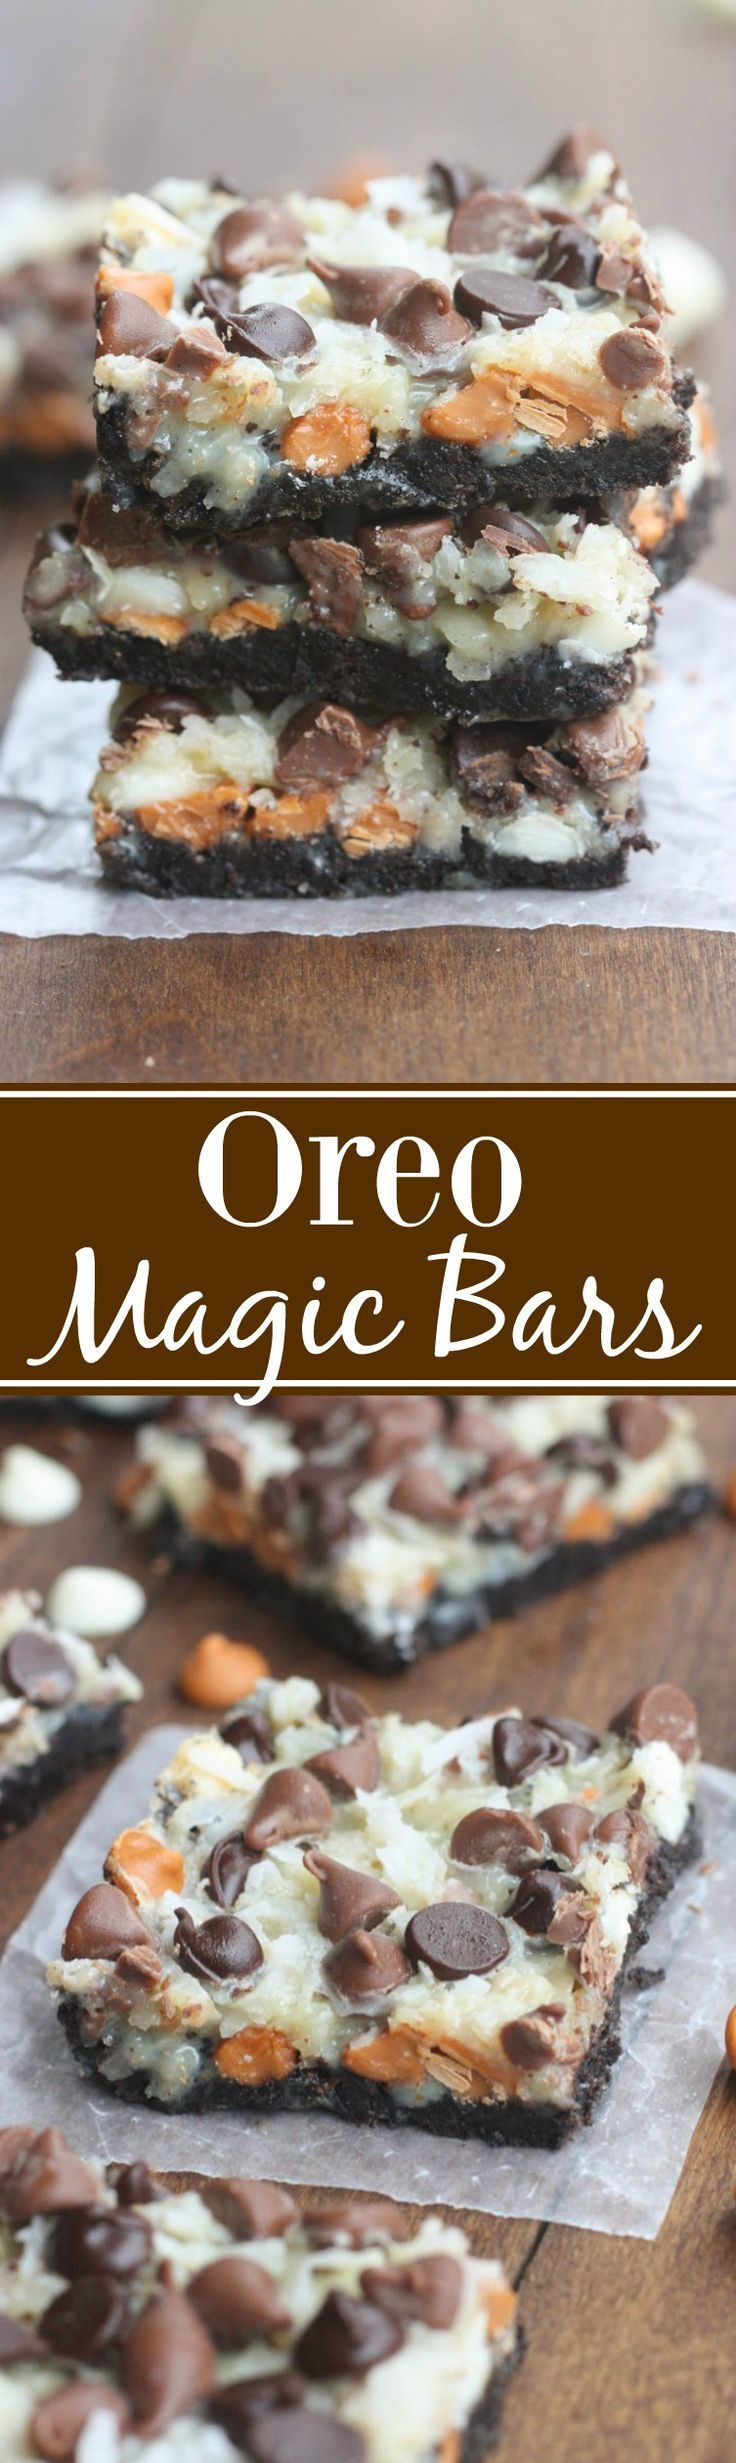 Oreo Magic Bars - Seven simple layers of Oreo chocolate bliss starting with an Oreo crust, three different types of chocolate chips, coconut and nuts. This is the EASIEST dessert, and always a party favorite.